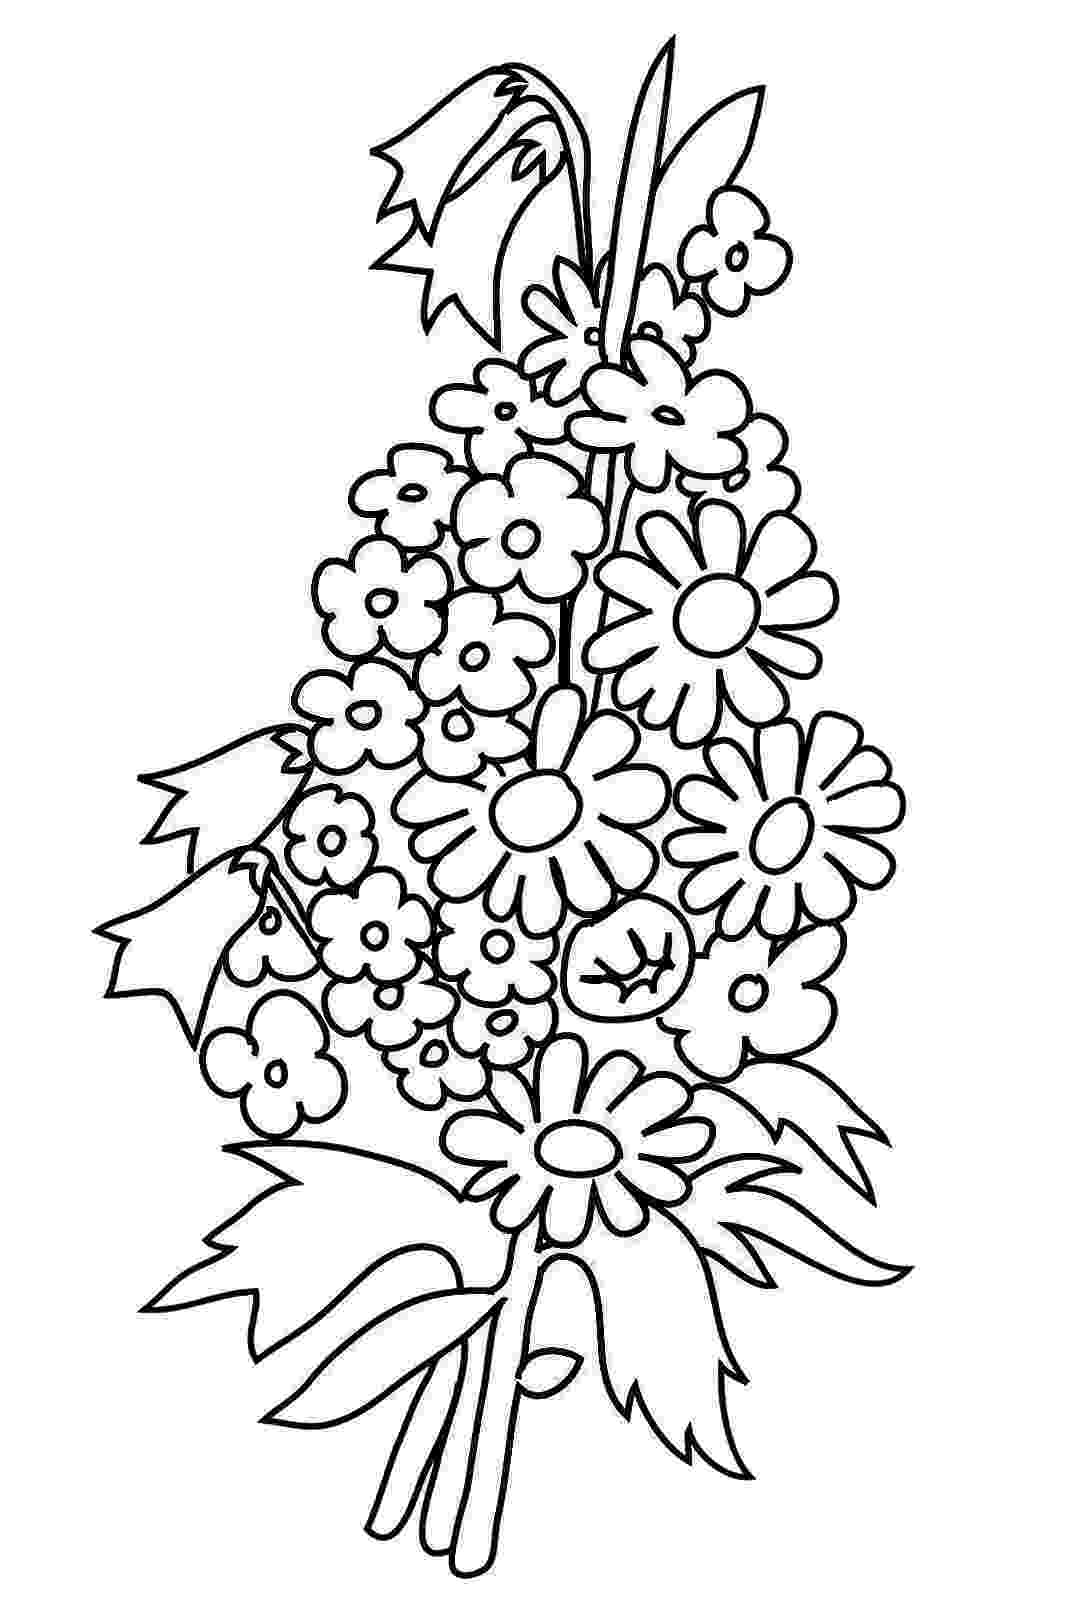 pictures of flowers coloring pages advanced flower coloring pages flower coloring page pictures coloring of pages flowers